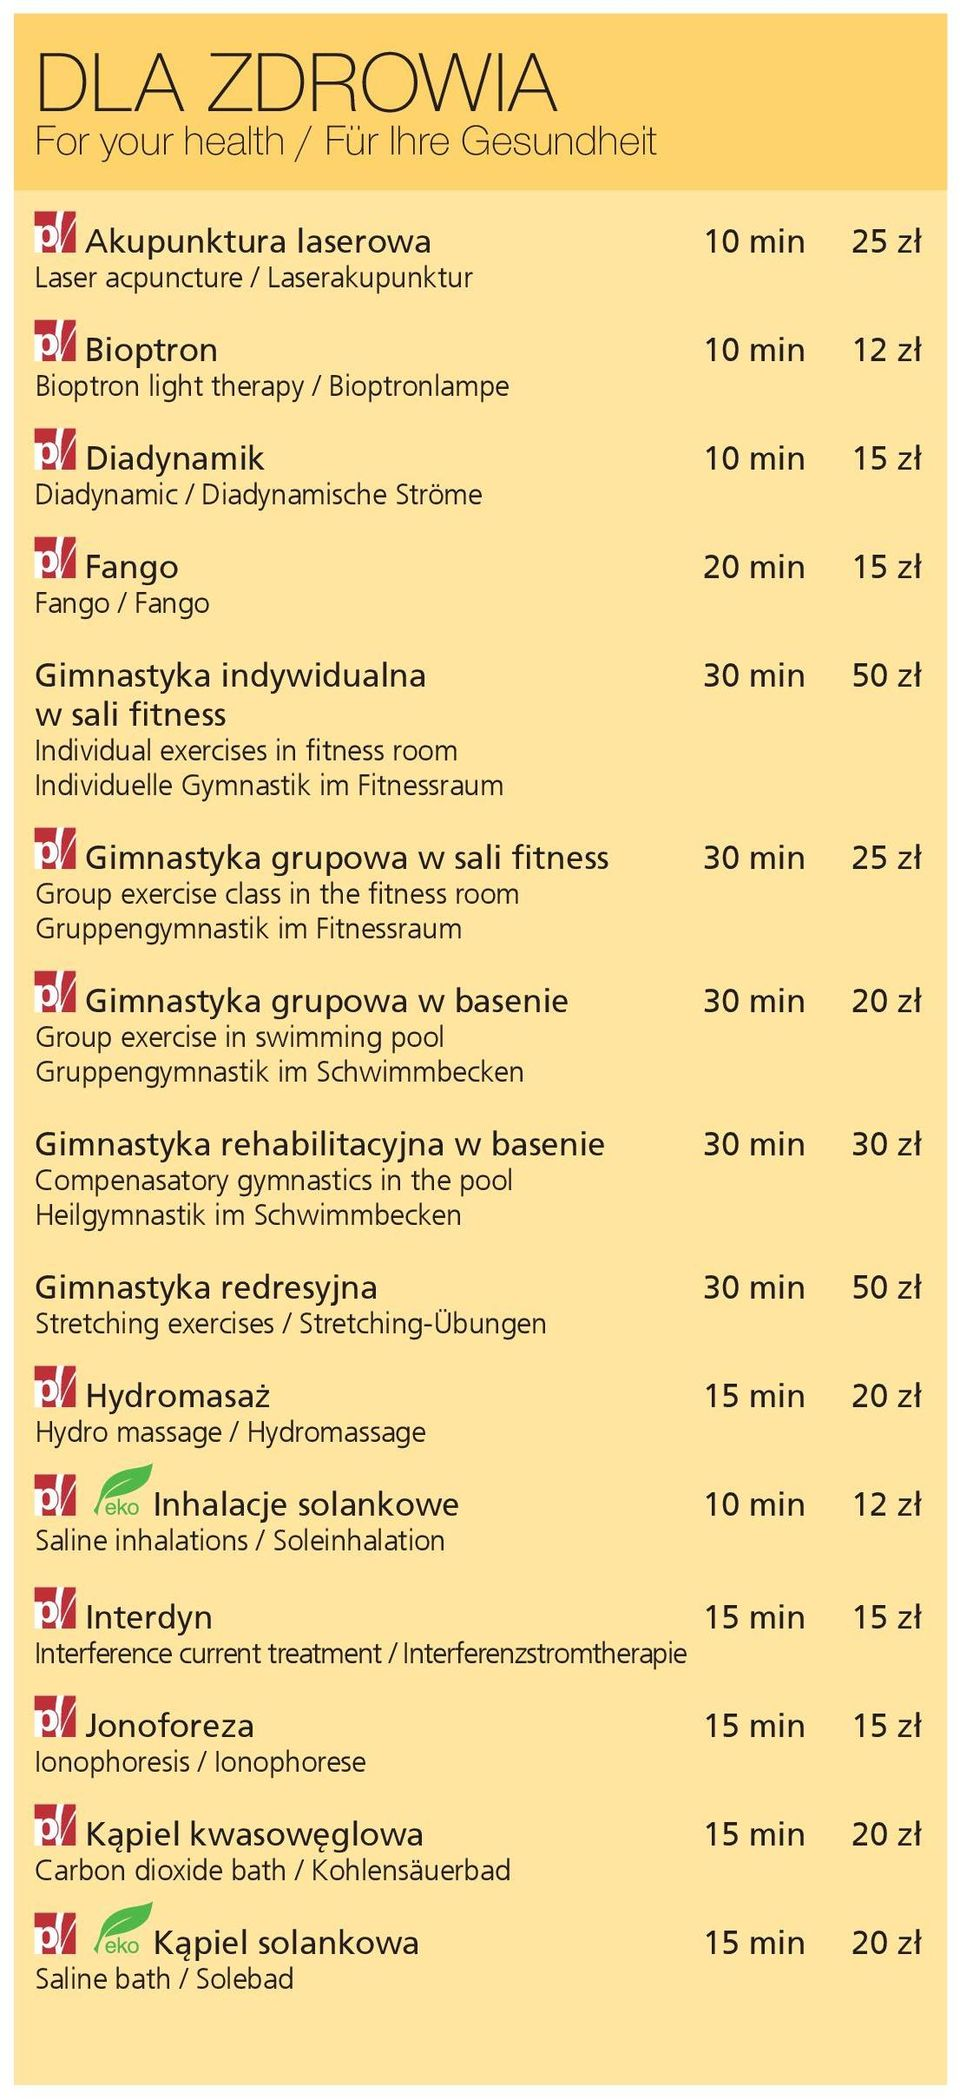 Gimnastyka grupowa w sali fitness 30 min 25 zł Group exercise class in the fitness room Gruppengymnastik im Fitnessraum Gimnastyka grupowa w basenie 30 min 20 zł Group exercise in swimming pool